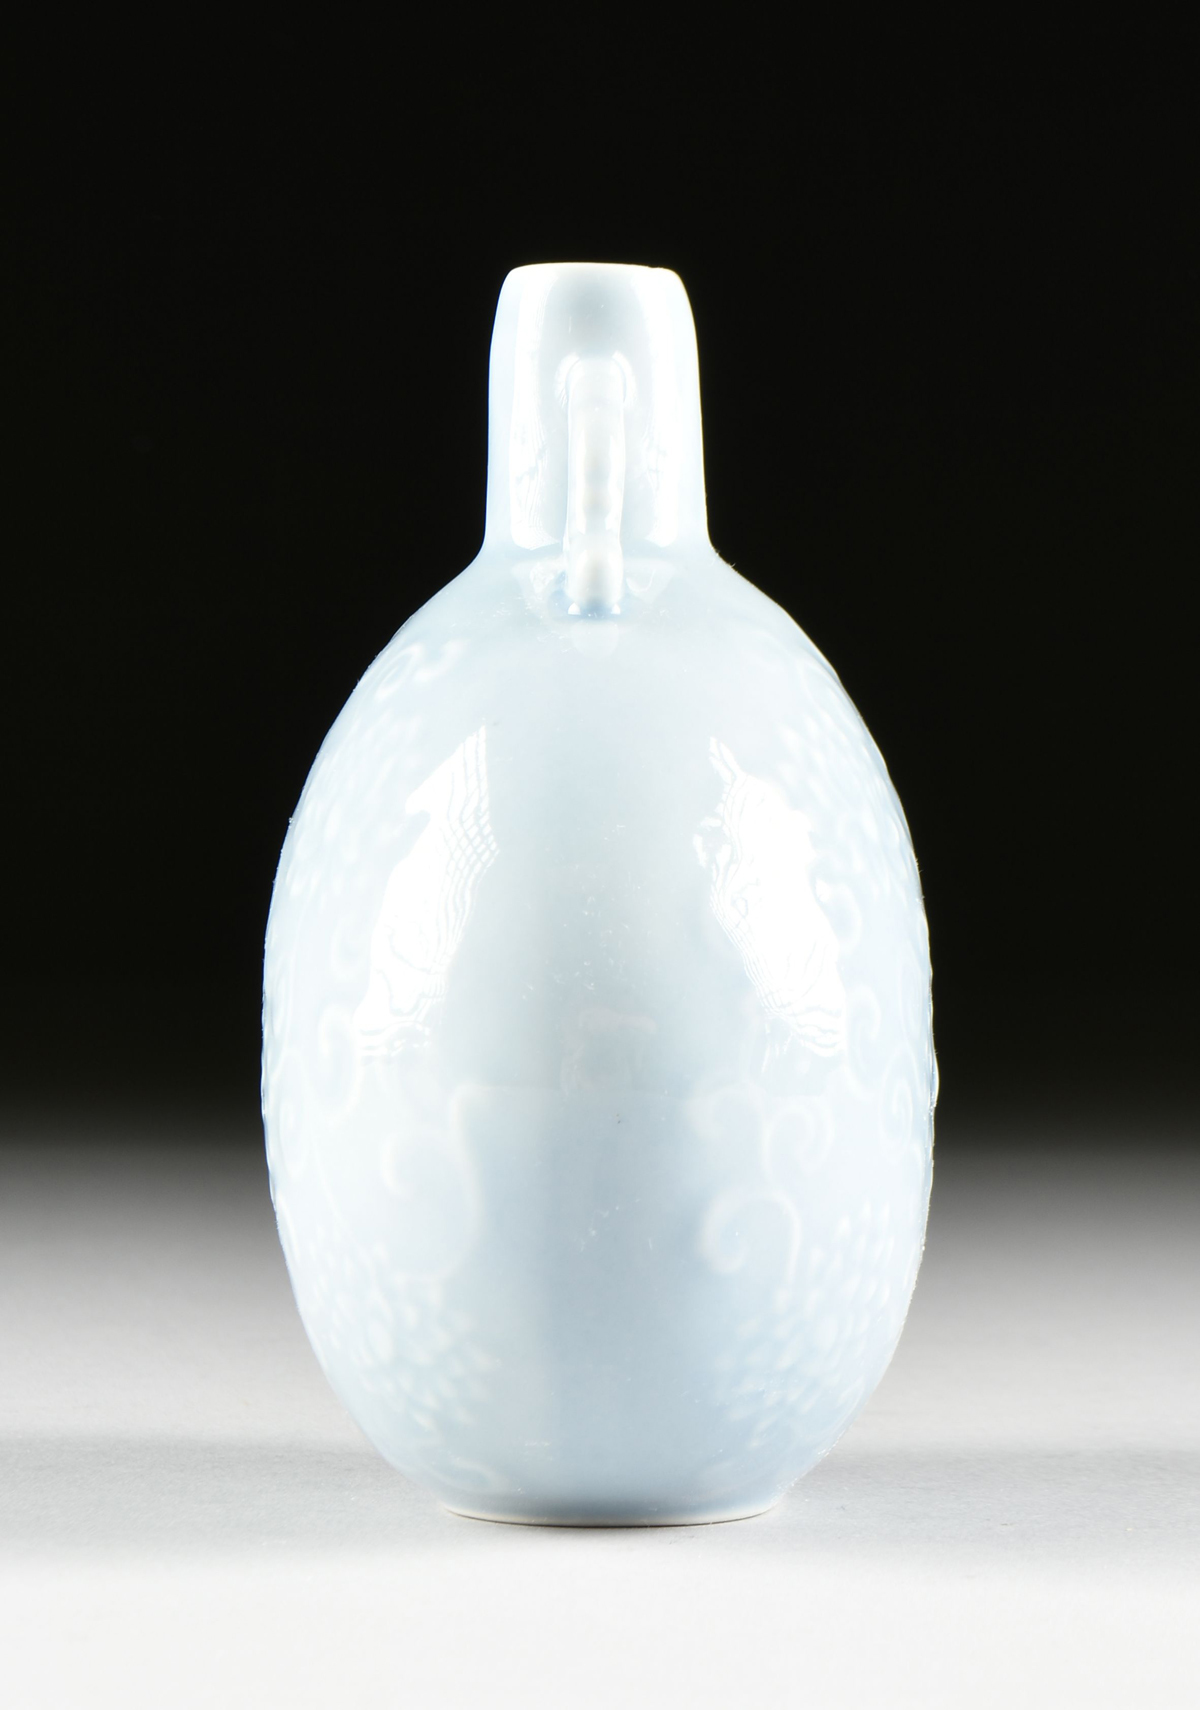 Lot 16 - A GROUP OF TWO CHINESE GLAZED PORCELAIN VASES, MODERN, comprising a Qing Dynasty (1644-1912) style